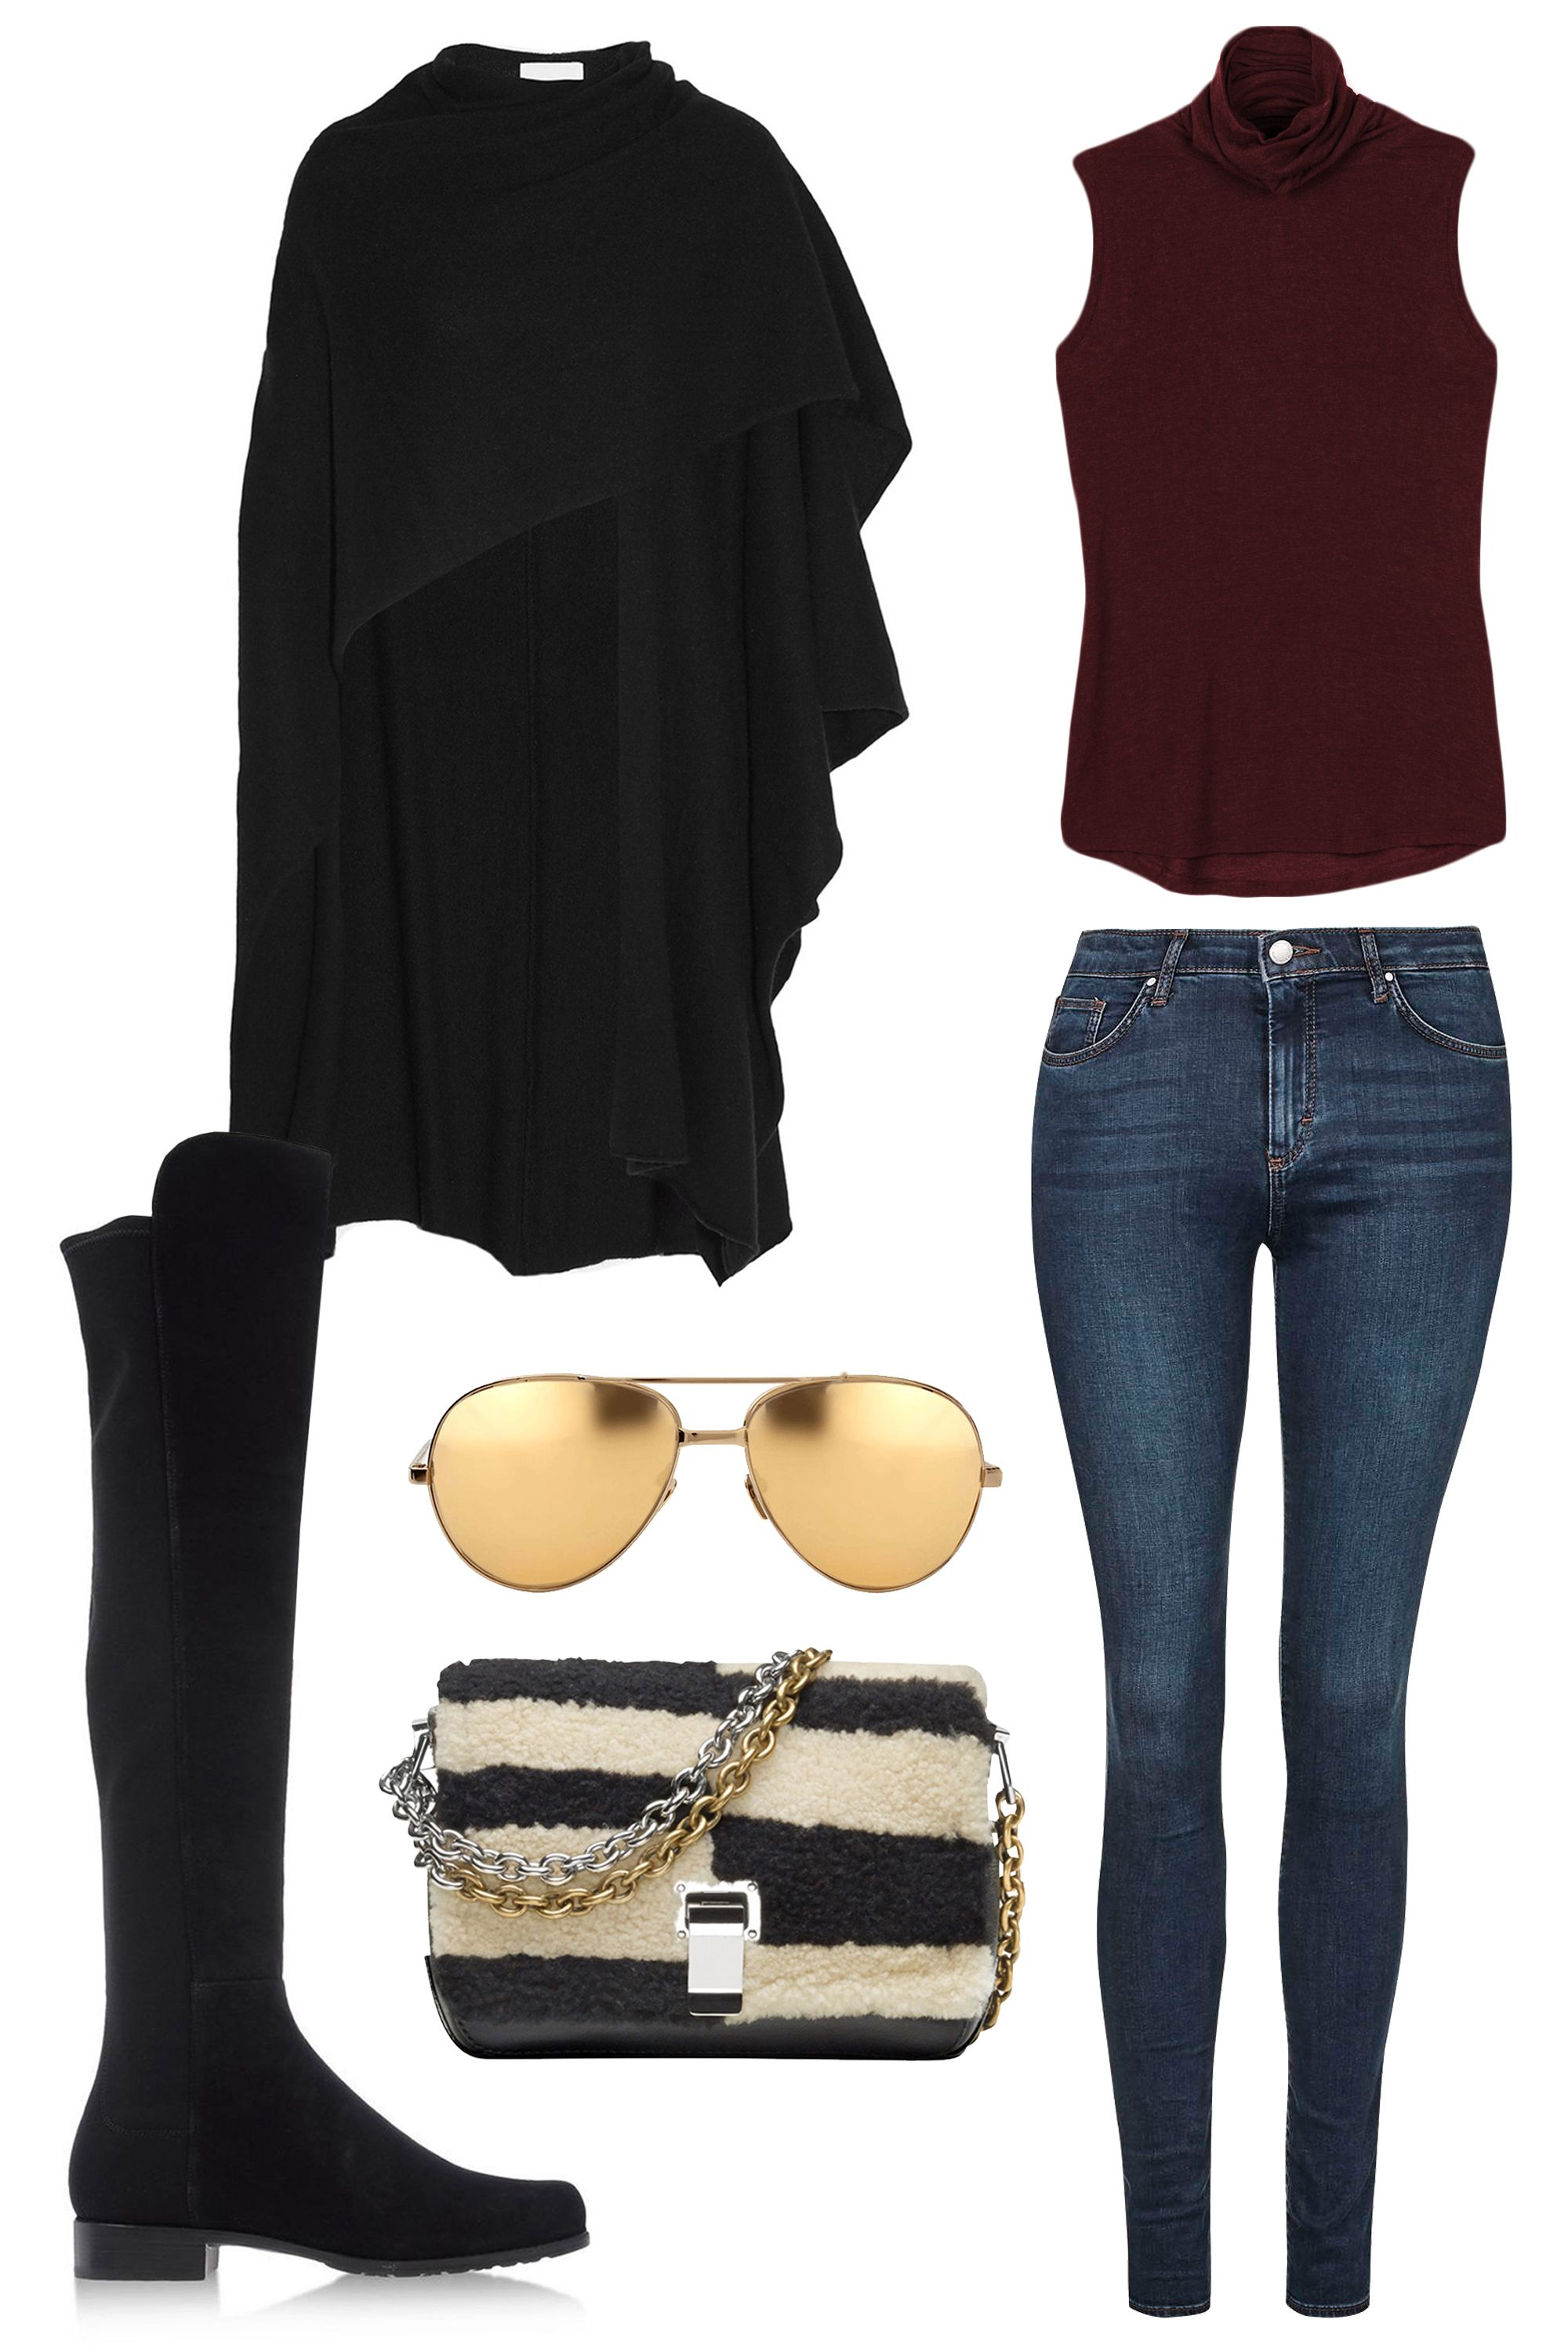 """<p>Spending a crisp fall weekend afternoon shopping around town? Add a wrap over classic skinny jeans to chase the chill with flat, over-the-knee suede boots and golden sunnies for an ensemble that's comfortable, sleek and seasonally appropriate. </p><p><strong>Kit and Ace</strong> Prevost Sleeveless Top, $78, <a href=""""https://ad.atdmt.com/c/go;p=11067200800298;a=11067200800296;ev.a=1;idfa=;idfa_lat=;aaid=;aaid_lat=;cache="""" target=""""_blank"""">kitandace.com</a>; <strong>Topshop</strong> MOTO Dark Vintage Leigh Jeans, $65, <a href=""""http://us.topshop.com/en/tsus/product/clothing-70483/jeans-4593087/skinny-jeans-3533632/moto-dark-vintage-leigh-jeans-4575359?bi=1&ps=20"""" target=""""_blank"""">topshop.com</a>; <strong>Madeleine Thompson</strong> Cashmere Wrap, $525, <a href=""""http://www.net-a-porter.com/us/en/product/535806"""" target=""""_blank"""">net-a-porter.com</a>; <strong>Linda Farrow </strong>Yellow Gold Aviators, $1,105, <a href=""""https://shop.harpersbazaar.com/designers/l/linda-farrow/yellow-gold-aviators.html"""" target=""""_blank"""">shopBAZAAR.com</a>;<strong> Stuart Weitzman</strong> Black Suede Over-The-Knee Boot, $690, <a href=""""https://shop.harpersbazaar.com/designers/stuart-weitzman/over-the-knee-boots-7/"""" target=""""_blank"""">shopBAZAAR.com</a>; <strong>Proenza Schouler</strong> Striped Shearling Shoulder Bag, $1,650, <a href=""""https://shop.harpersbazaar.com/designers/p/proenza-schouler/striped-shearling-bag-5127.html"""" target=""""_blank"""">shopBAZAAR.com</a></p>"""